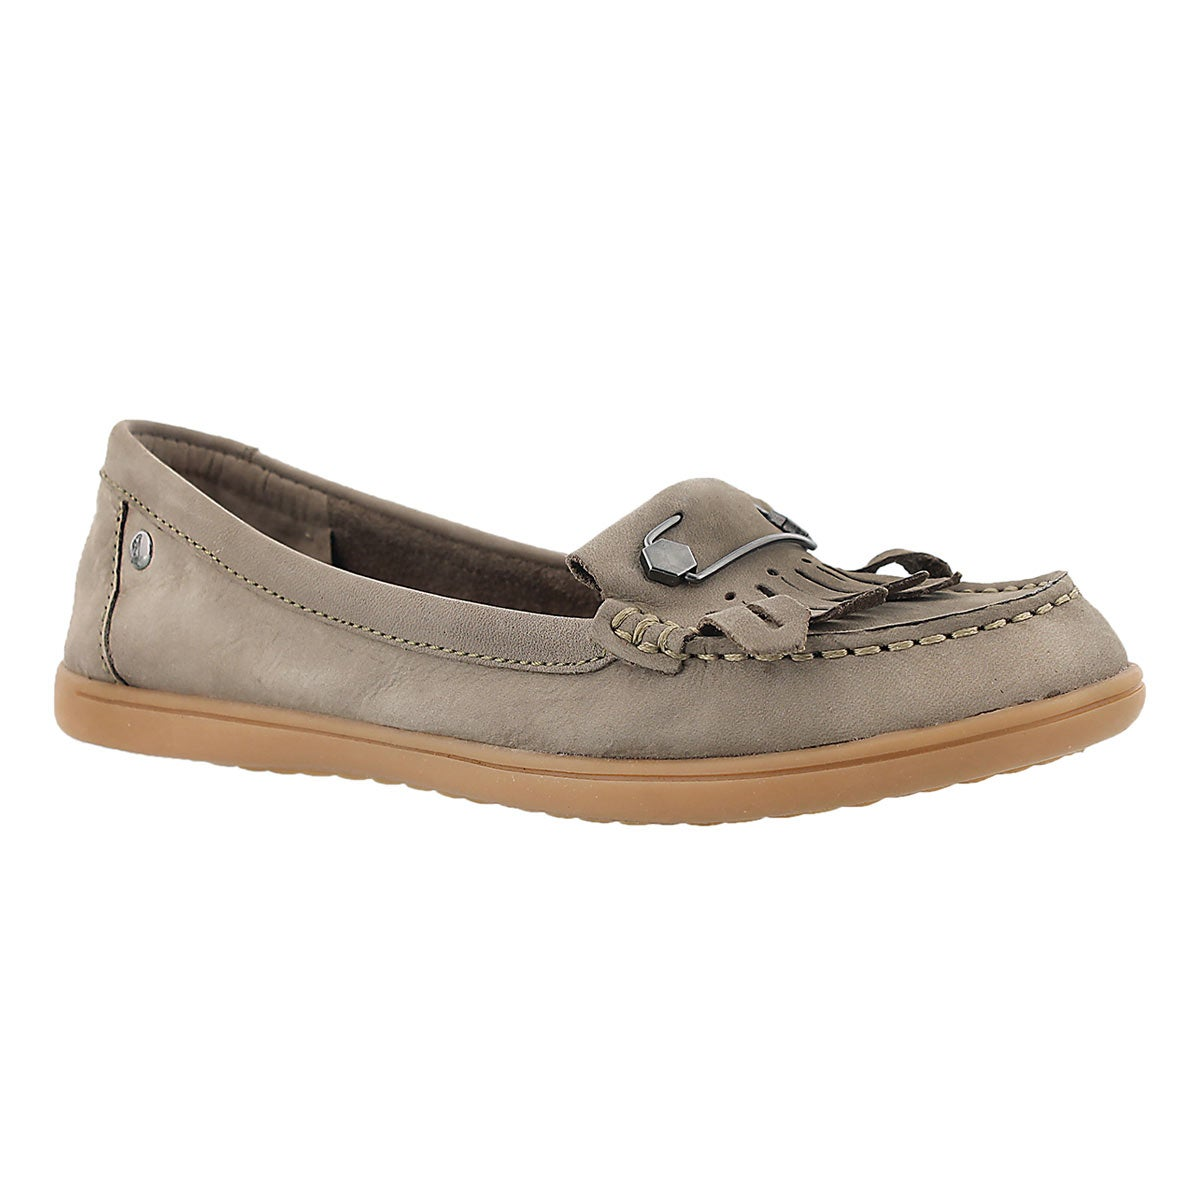 Mocassins RYLIE CLAUDINE, nubuck taupe, femmes